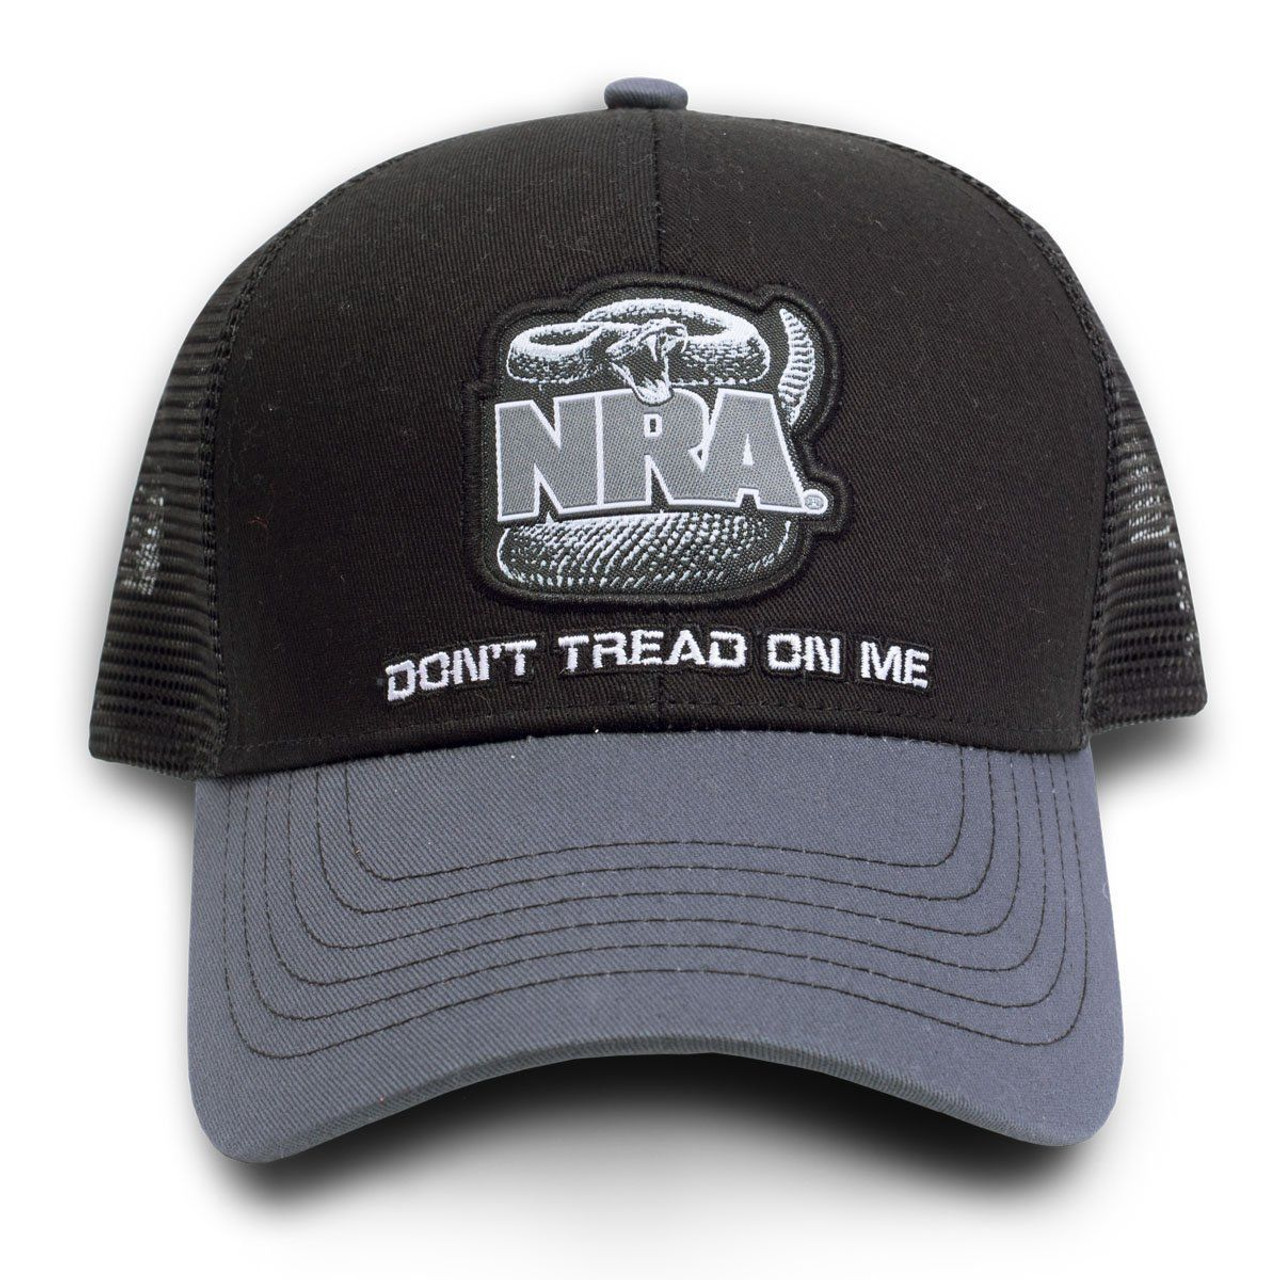 7e054d613c6 Buck Wear NRA Snake Don t Tread On Me Hat Cap American Flag USA Adjustable